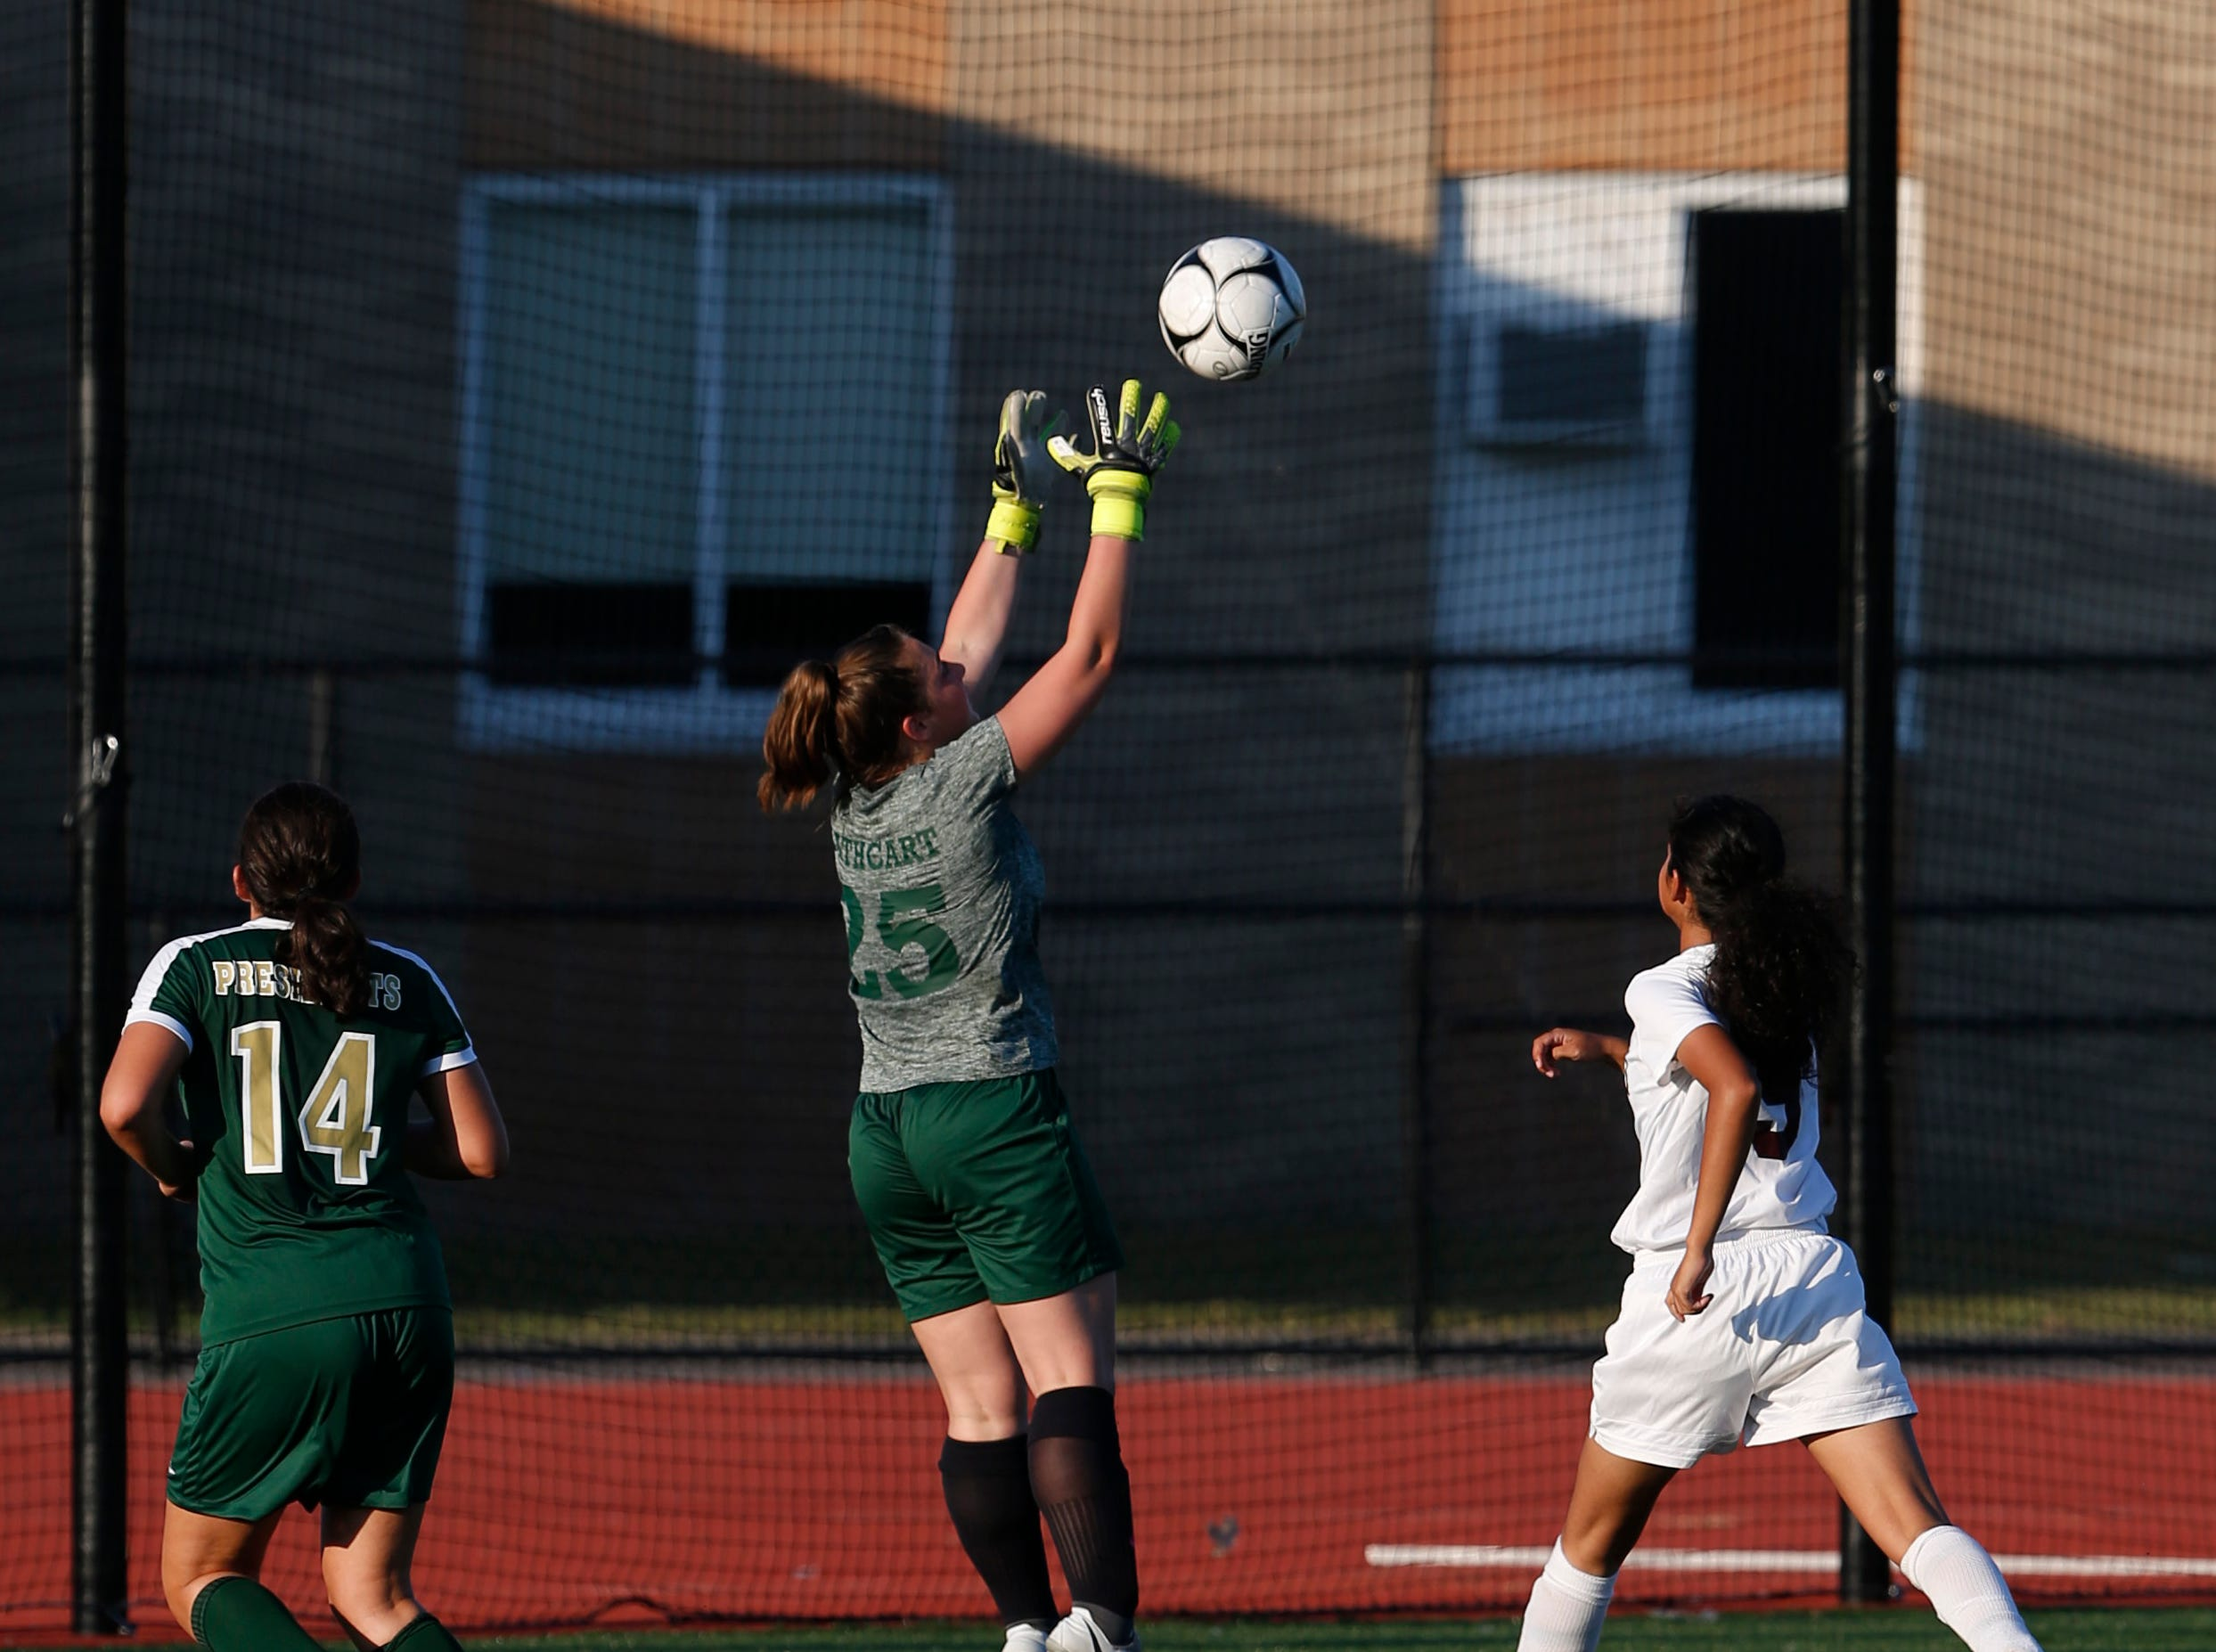 FDR's Alana Cathcart jumps for the ball during Wednesday's game in Hyde Park on September 5, 2018.